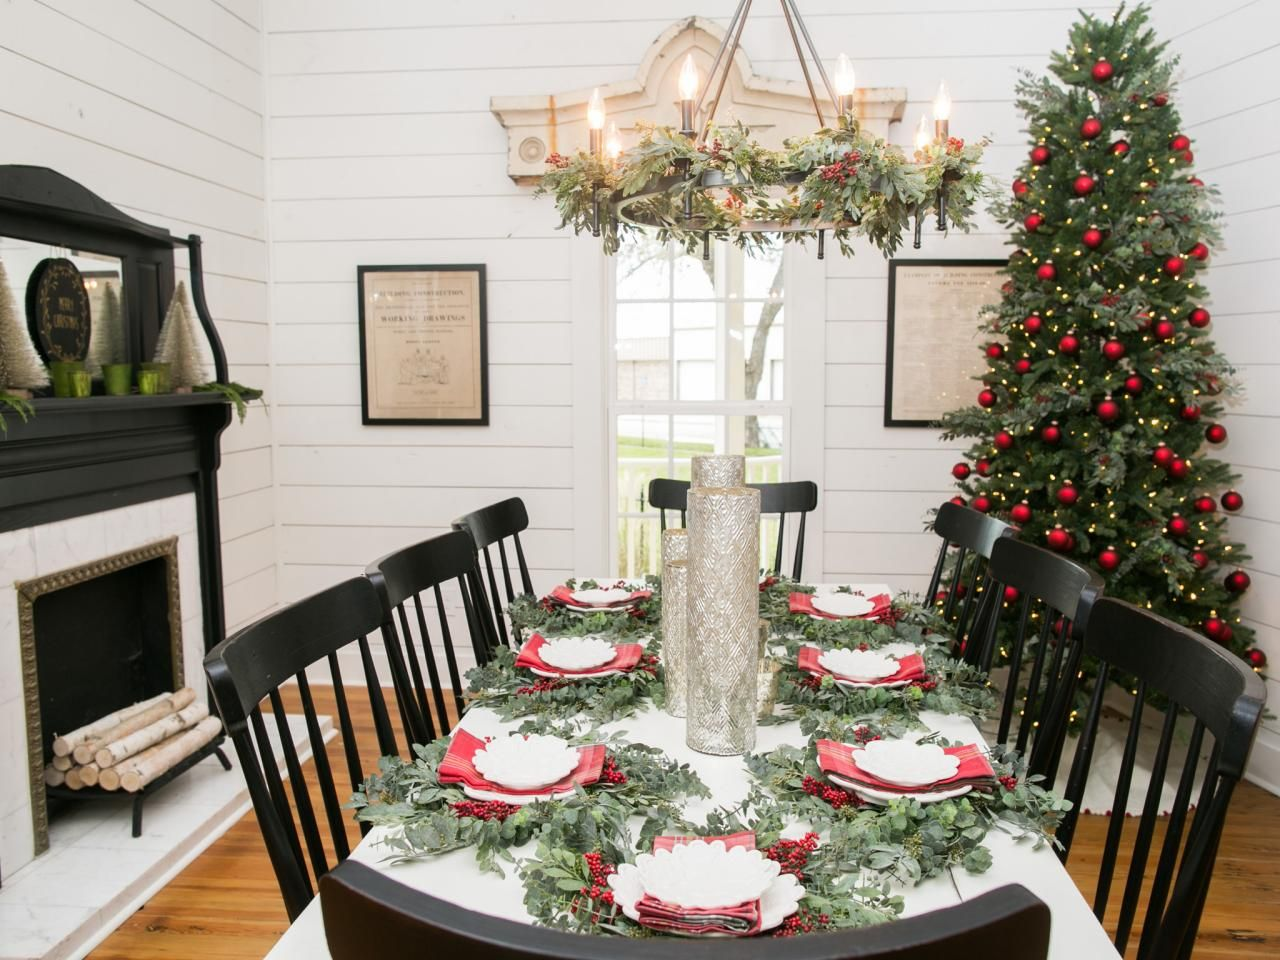 Find the best of fixer upper from hgtv home sweet home pinterest